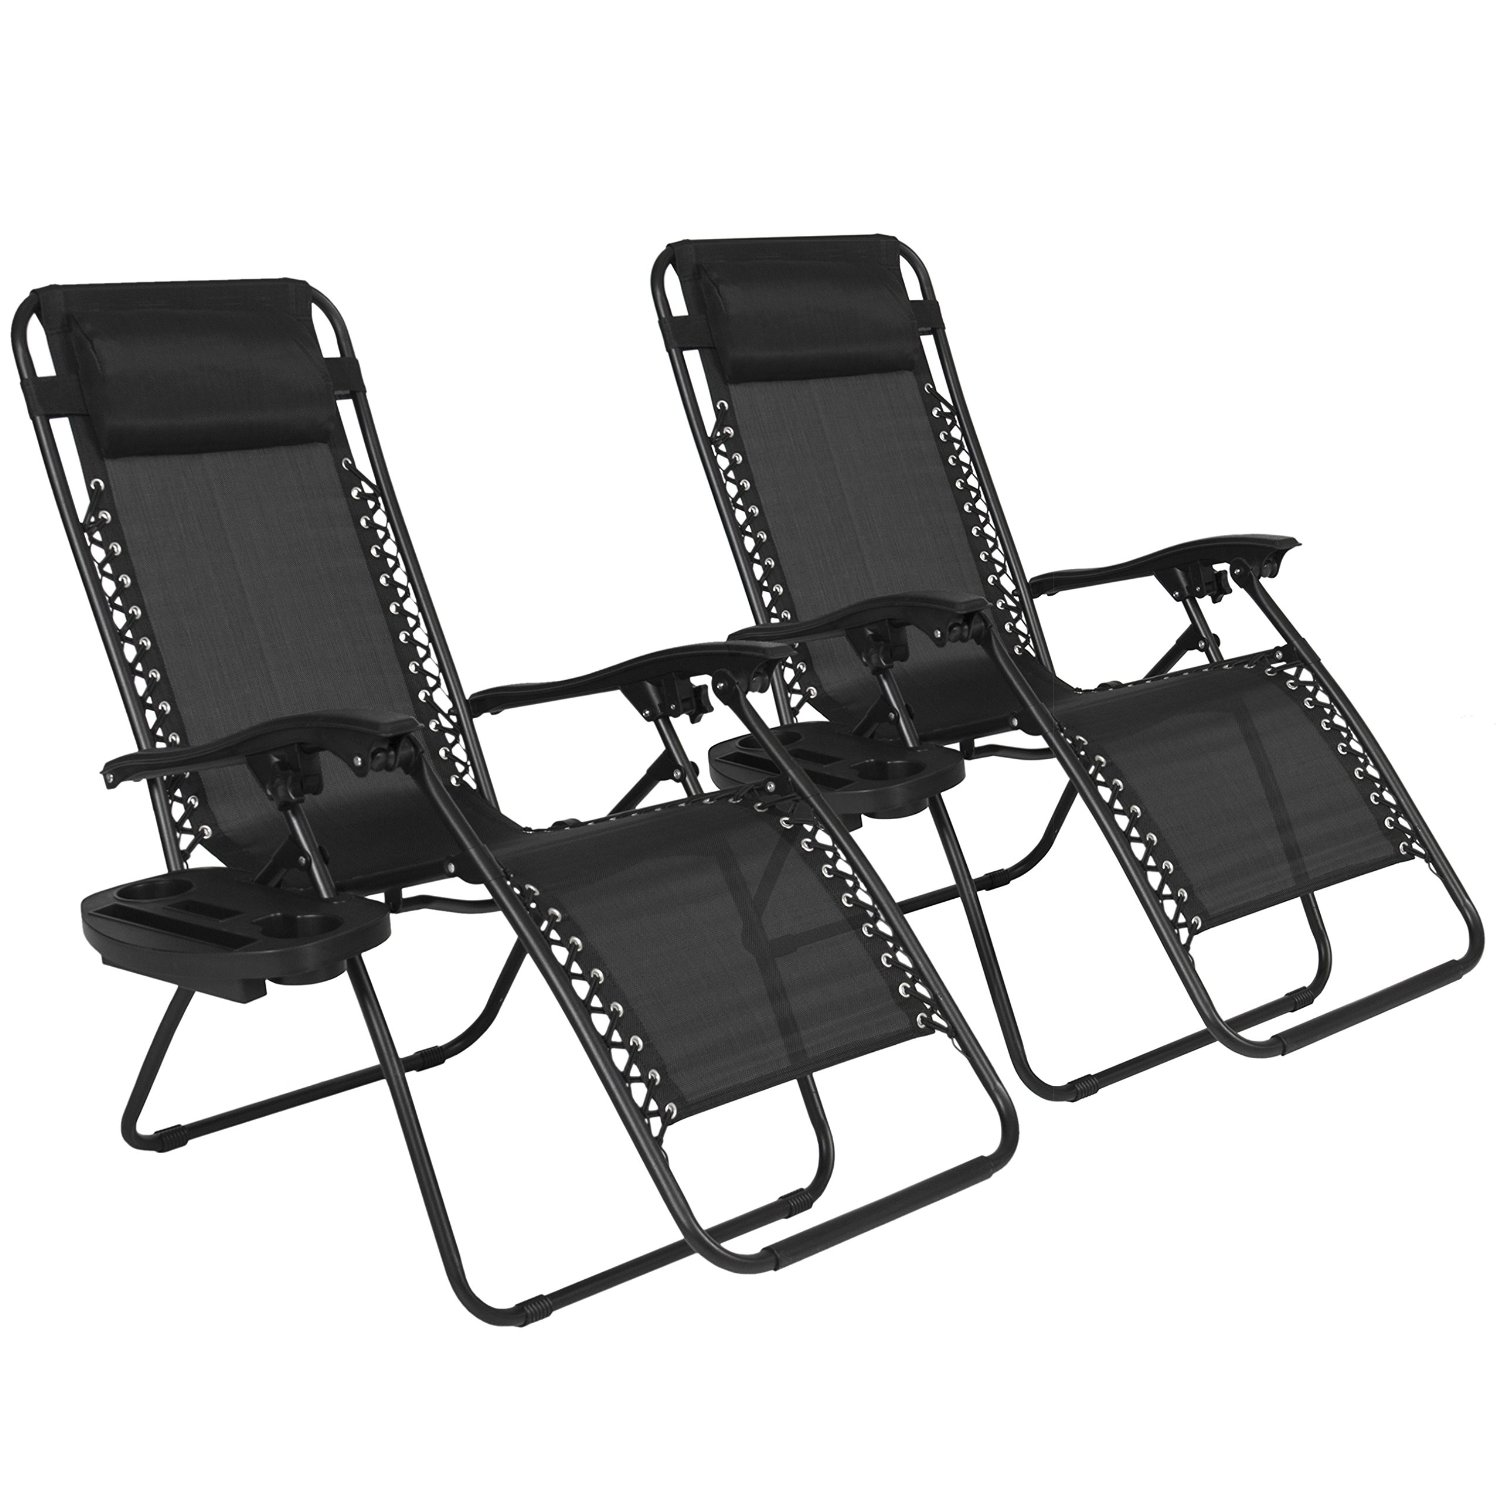 Best Choice Products Zero Gravity Chairs Case Of 2 Black Lounge Chairs Outdoor  sc 1 st  Backyard Design And Party Planning & Our Review of the 10 Best Outdoor Recliners islam-shia.org